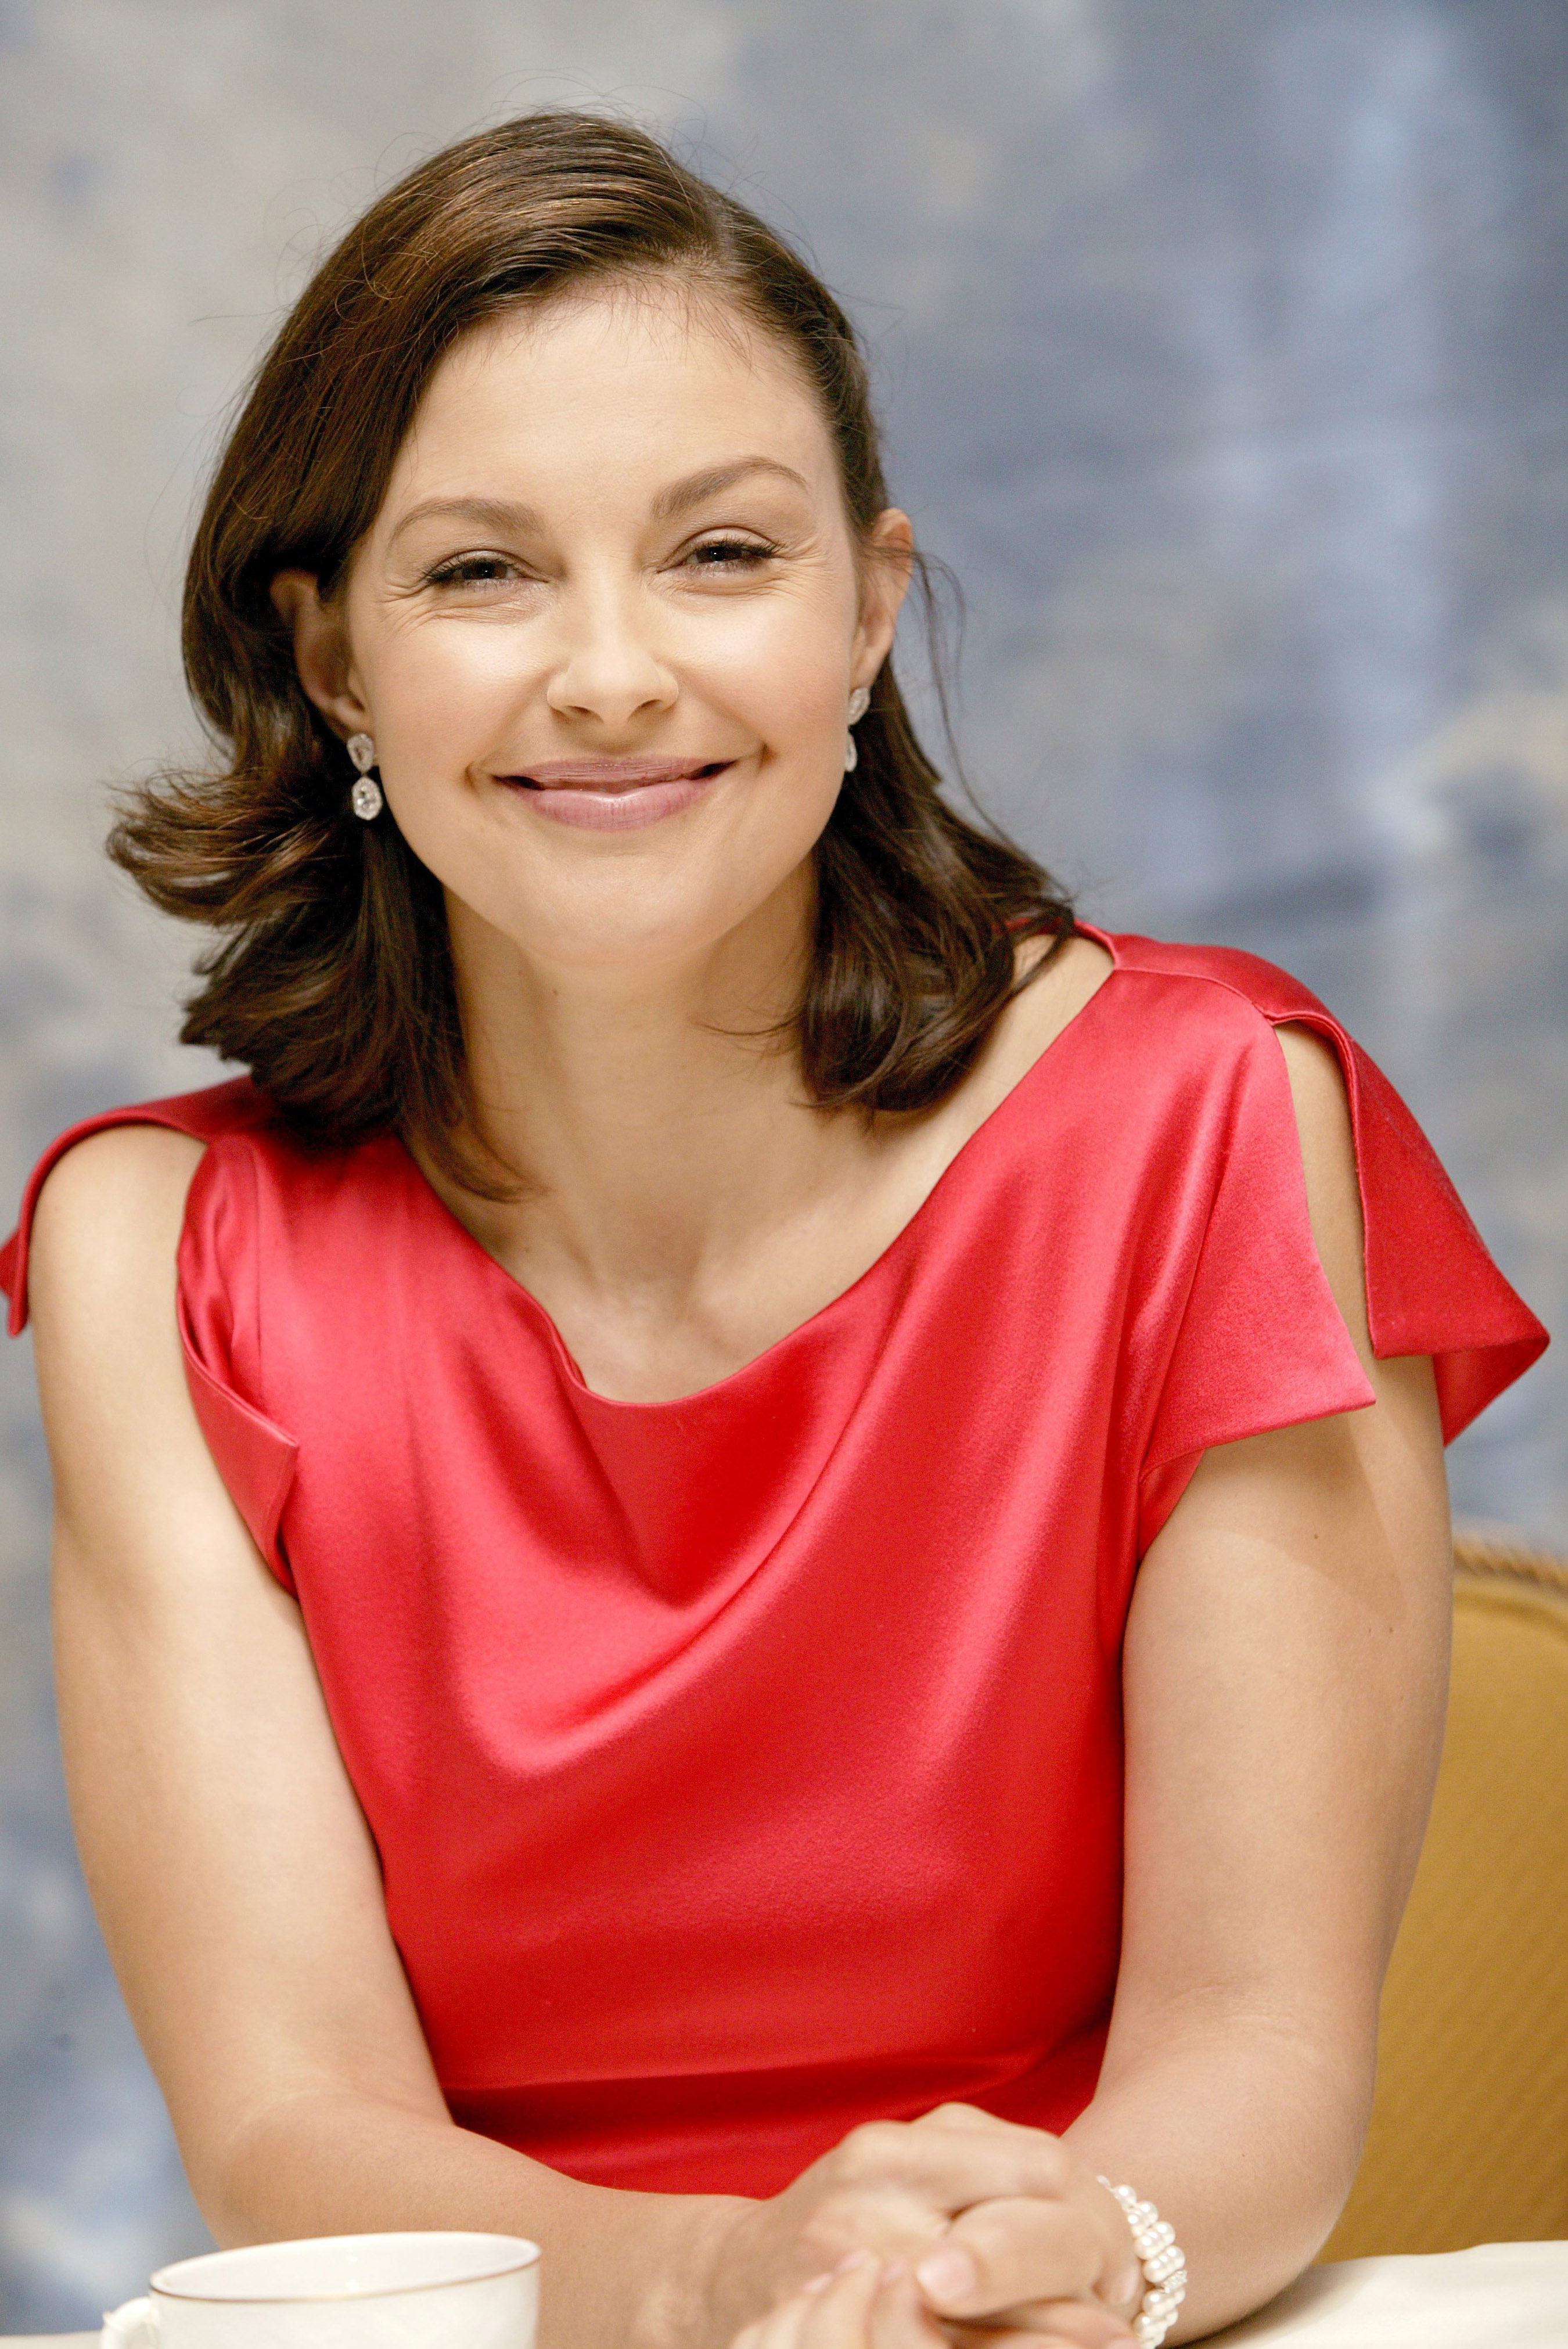 Ashley Judd Photo 222 Of 272 Pics Wallpaper Photo